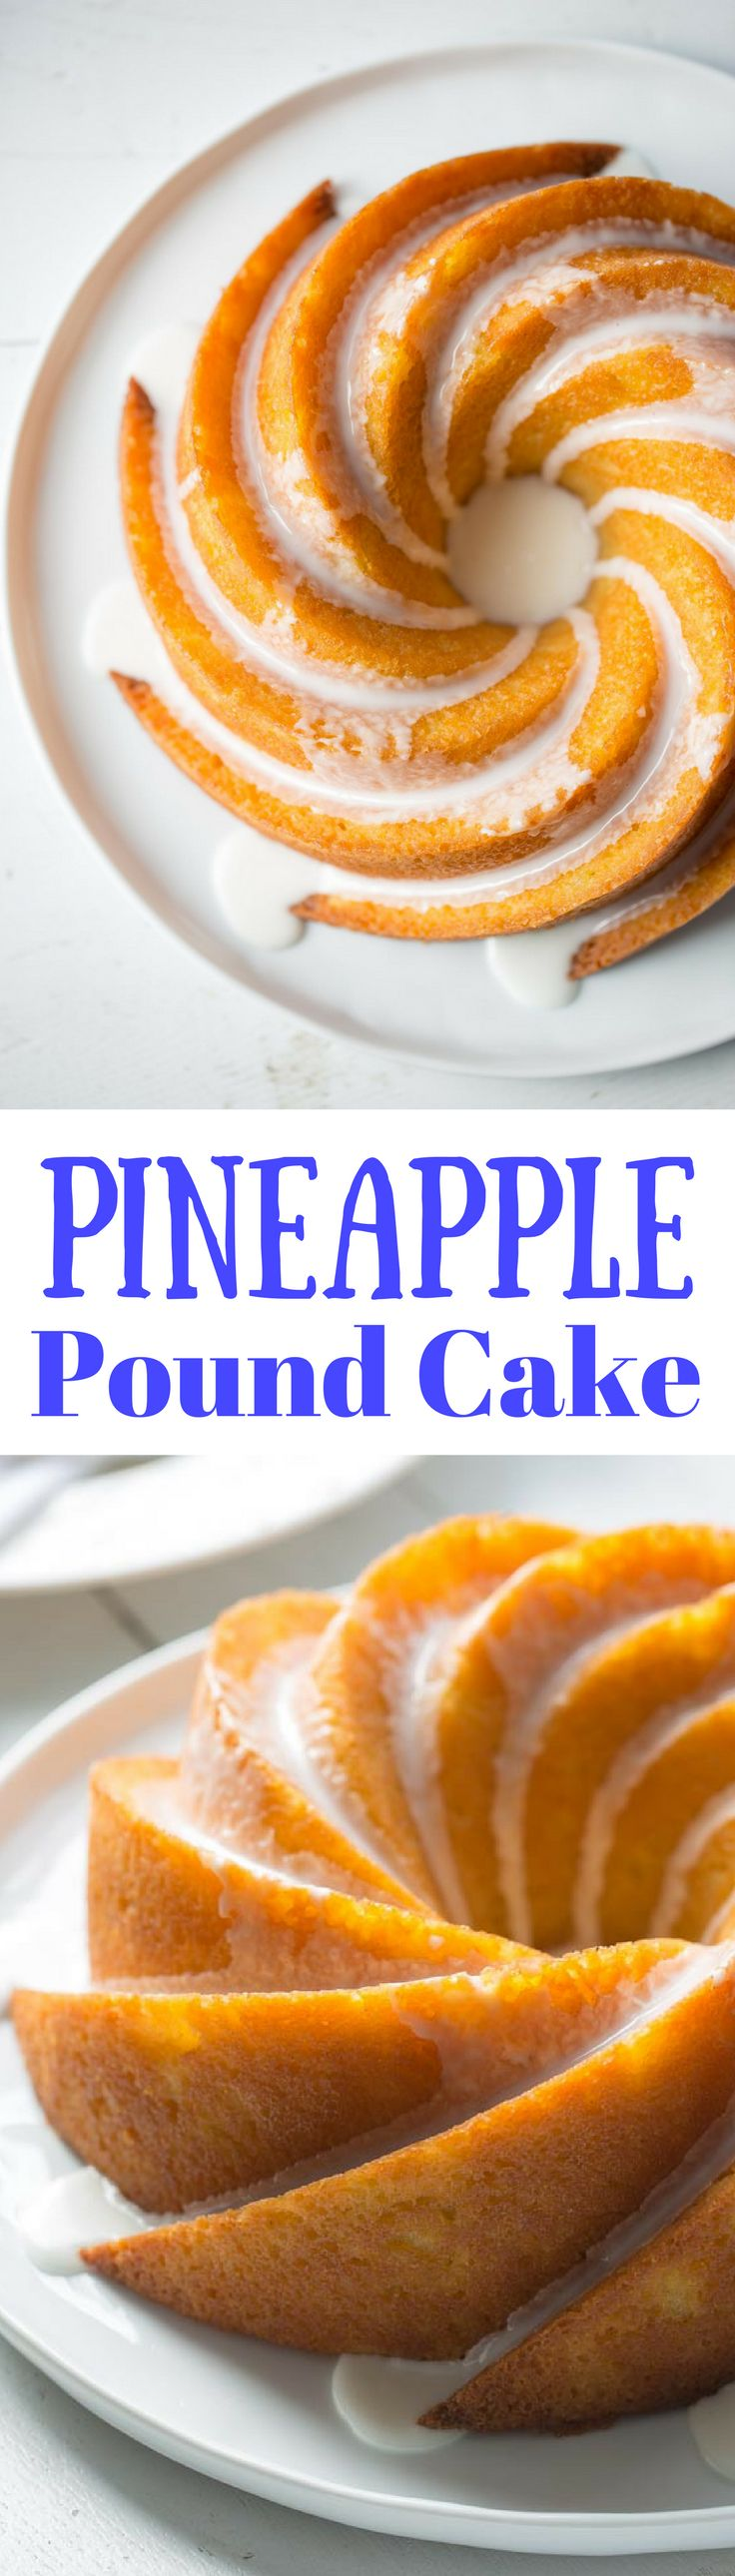 Pineapple Pound Cake ~ with plenty of crushed pineapple baked inside, this cake is a tropical treat! Drizzled with a simple pineapple icing.